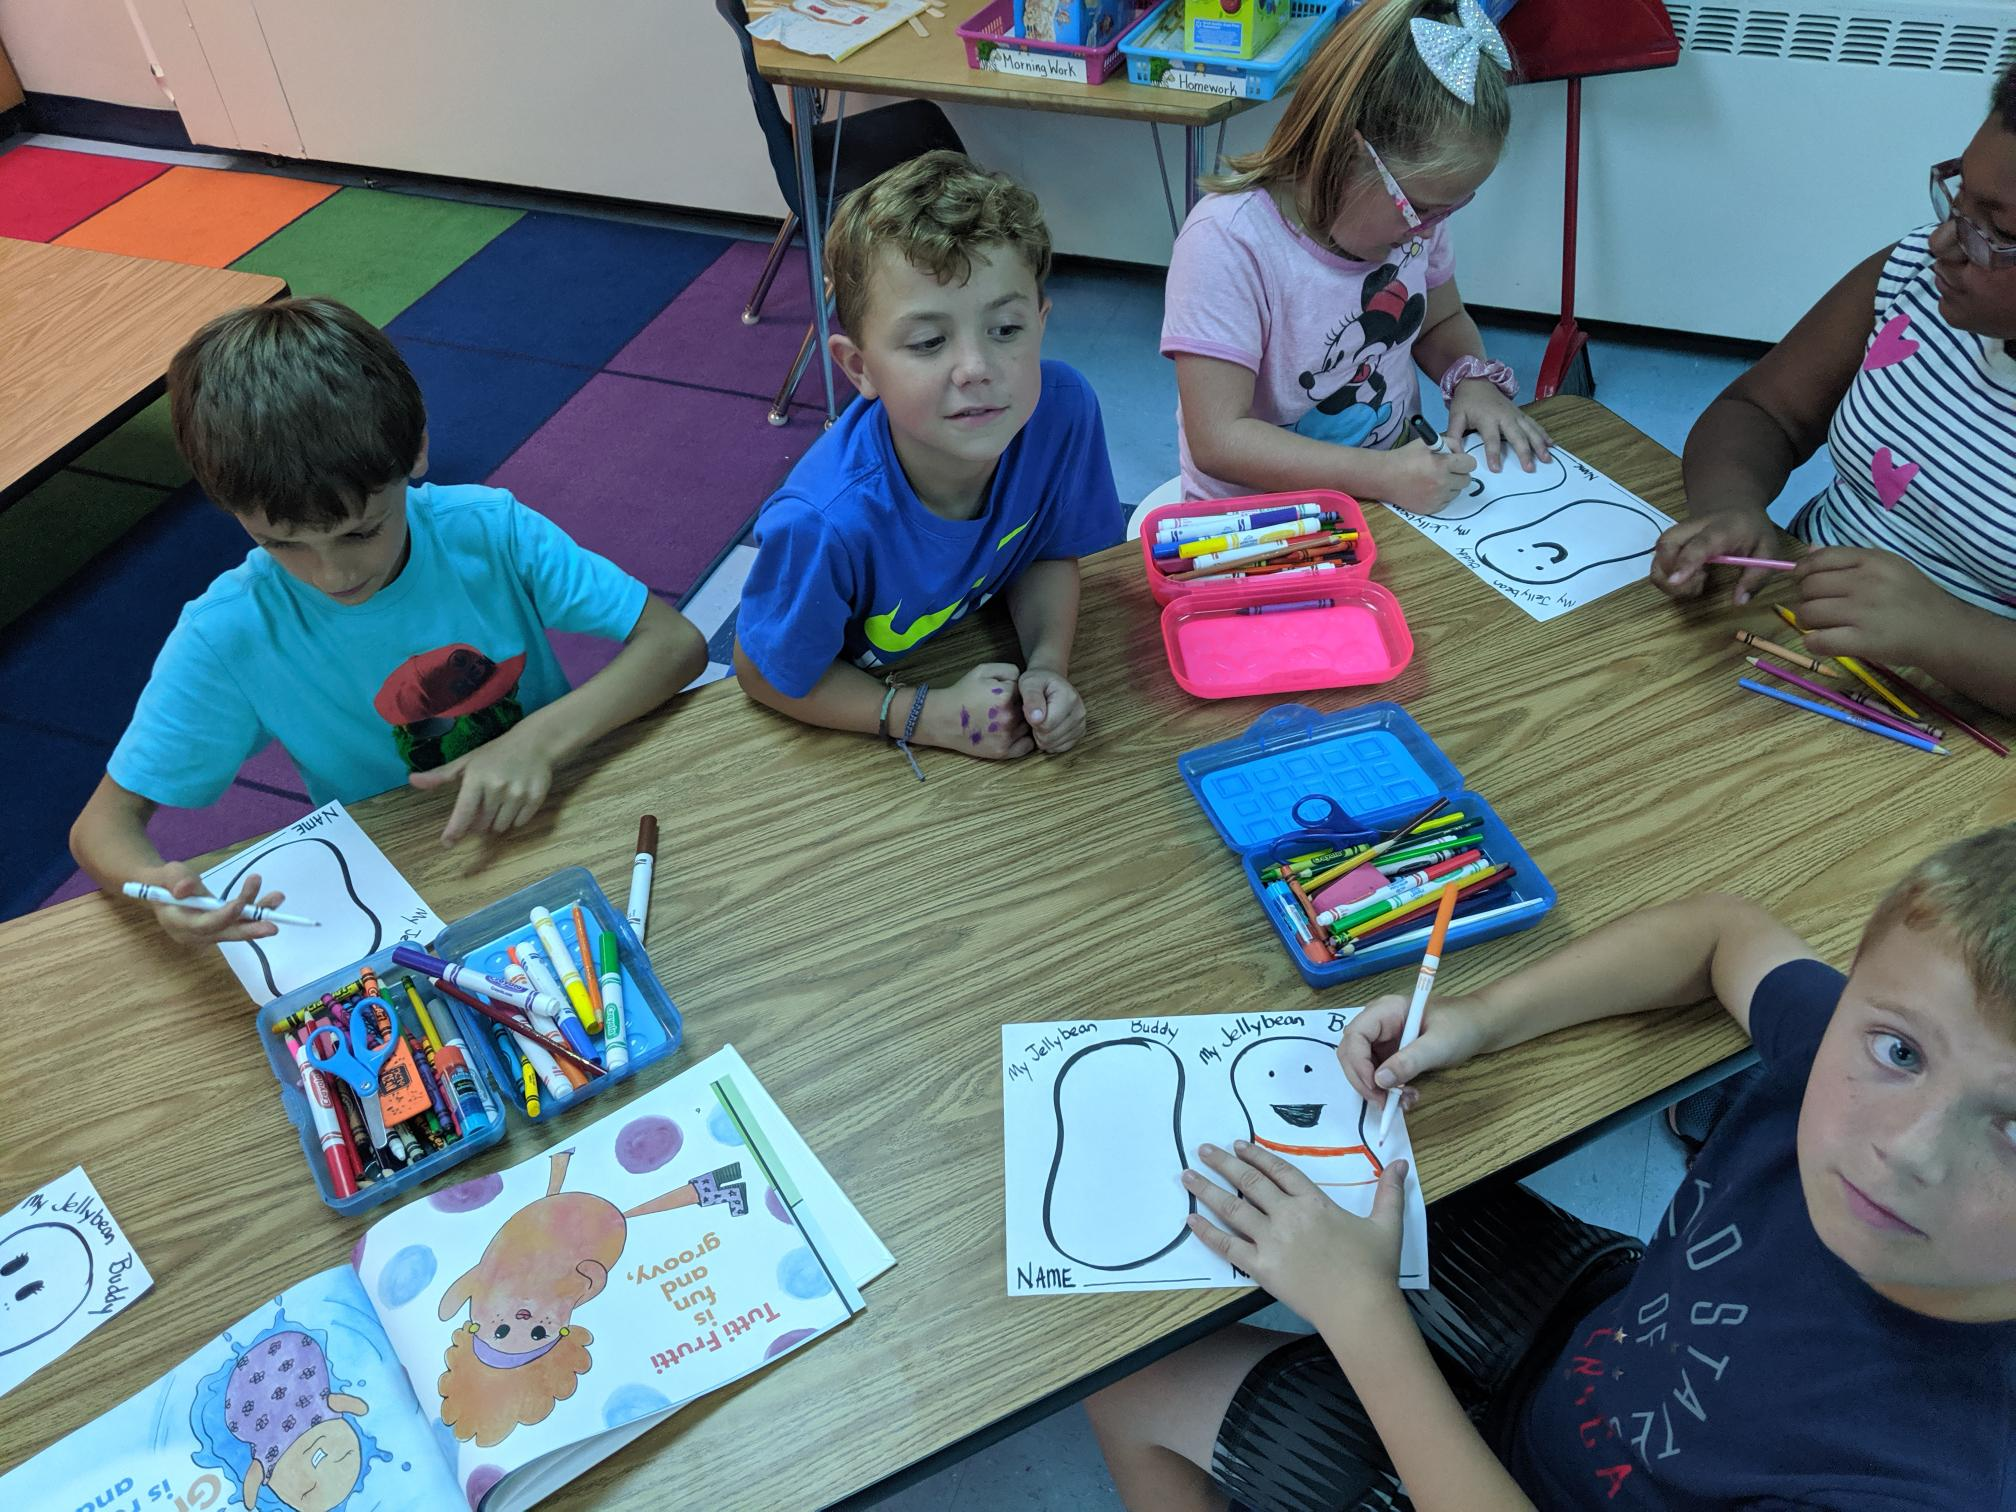 Kindergarten class working on a JELLYBEANS-inspired art project for getting to know their new classmates in Sept. 2019. :-)